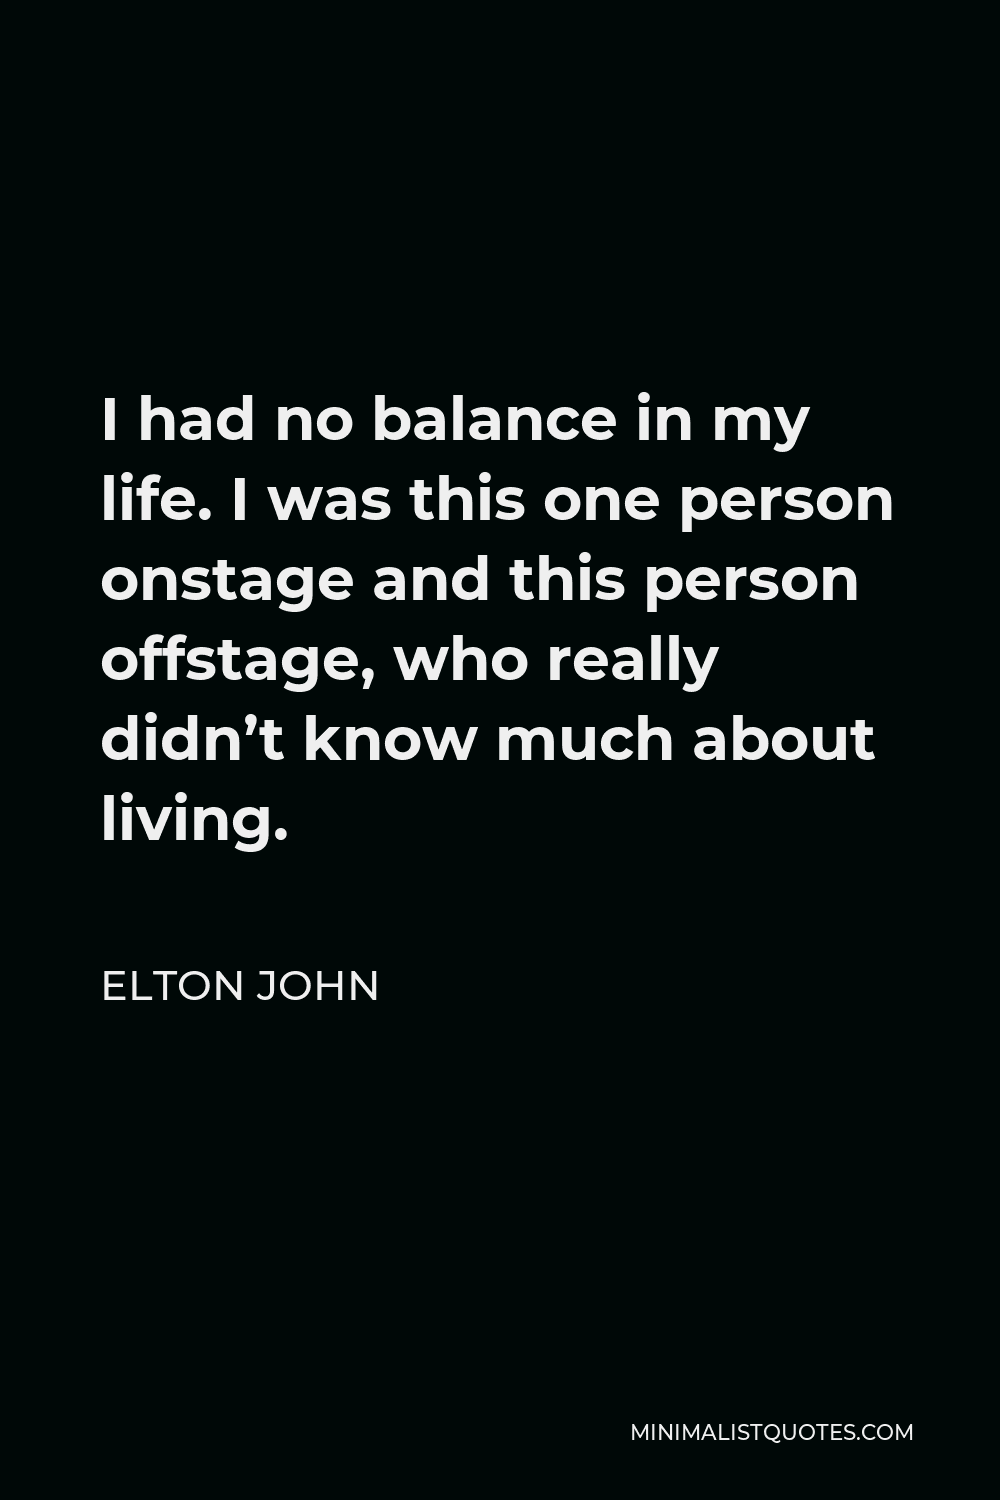 Elton John Quote - I had no balance in my life. I was this one person onstage and this person offstage, who really didn't know much about living.